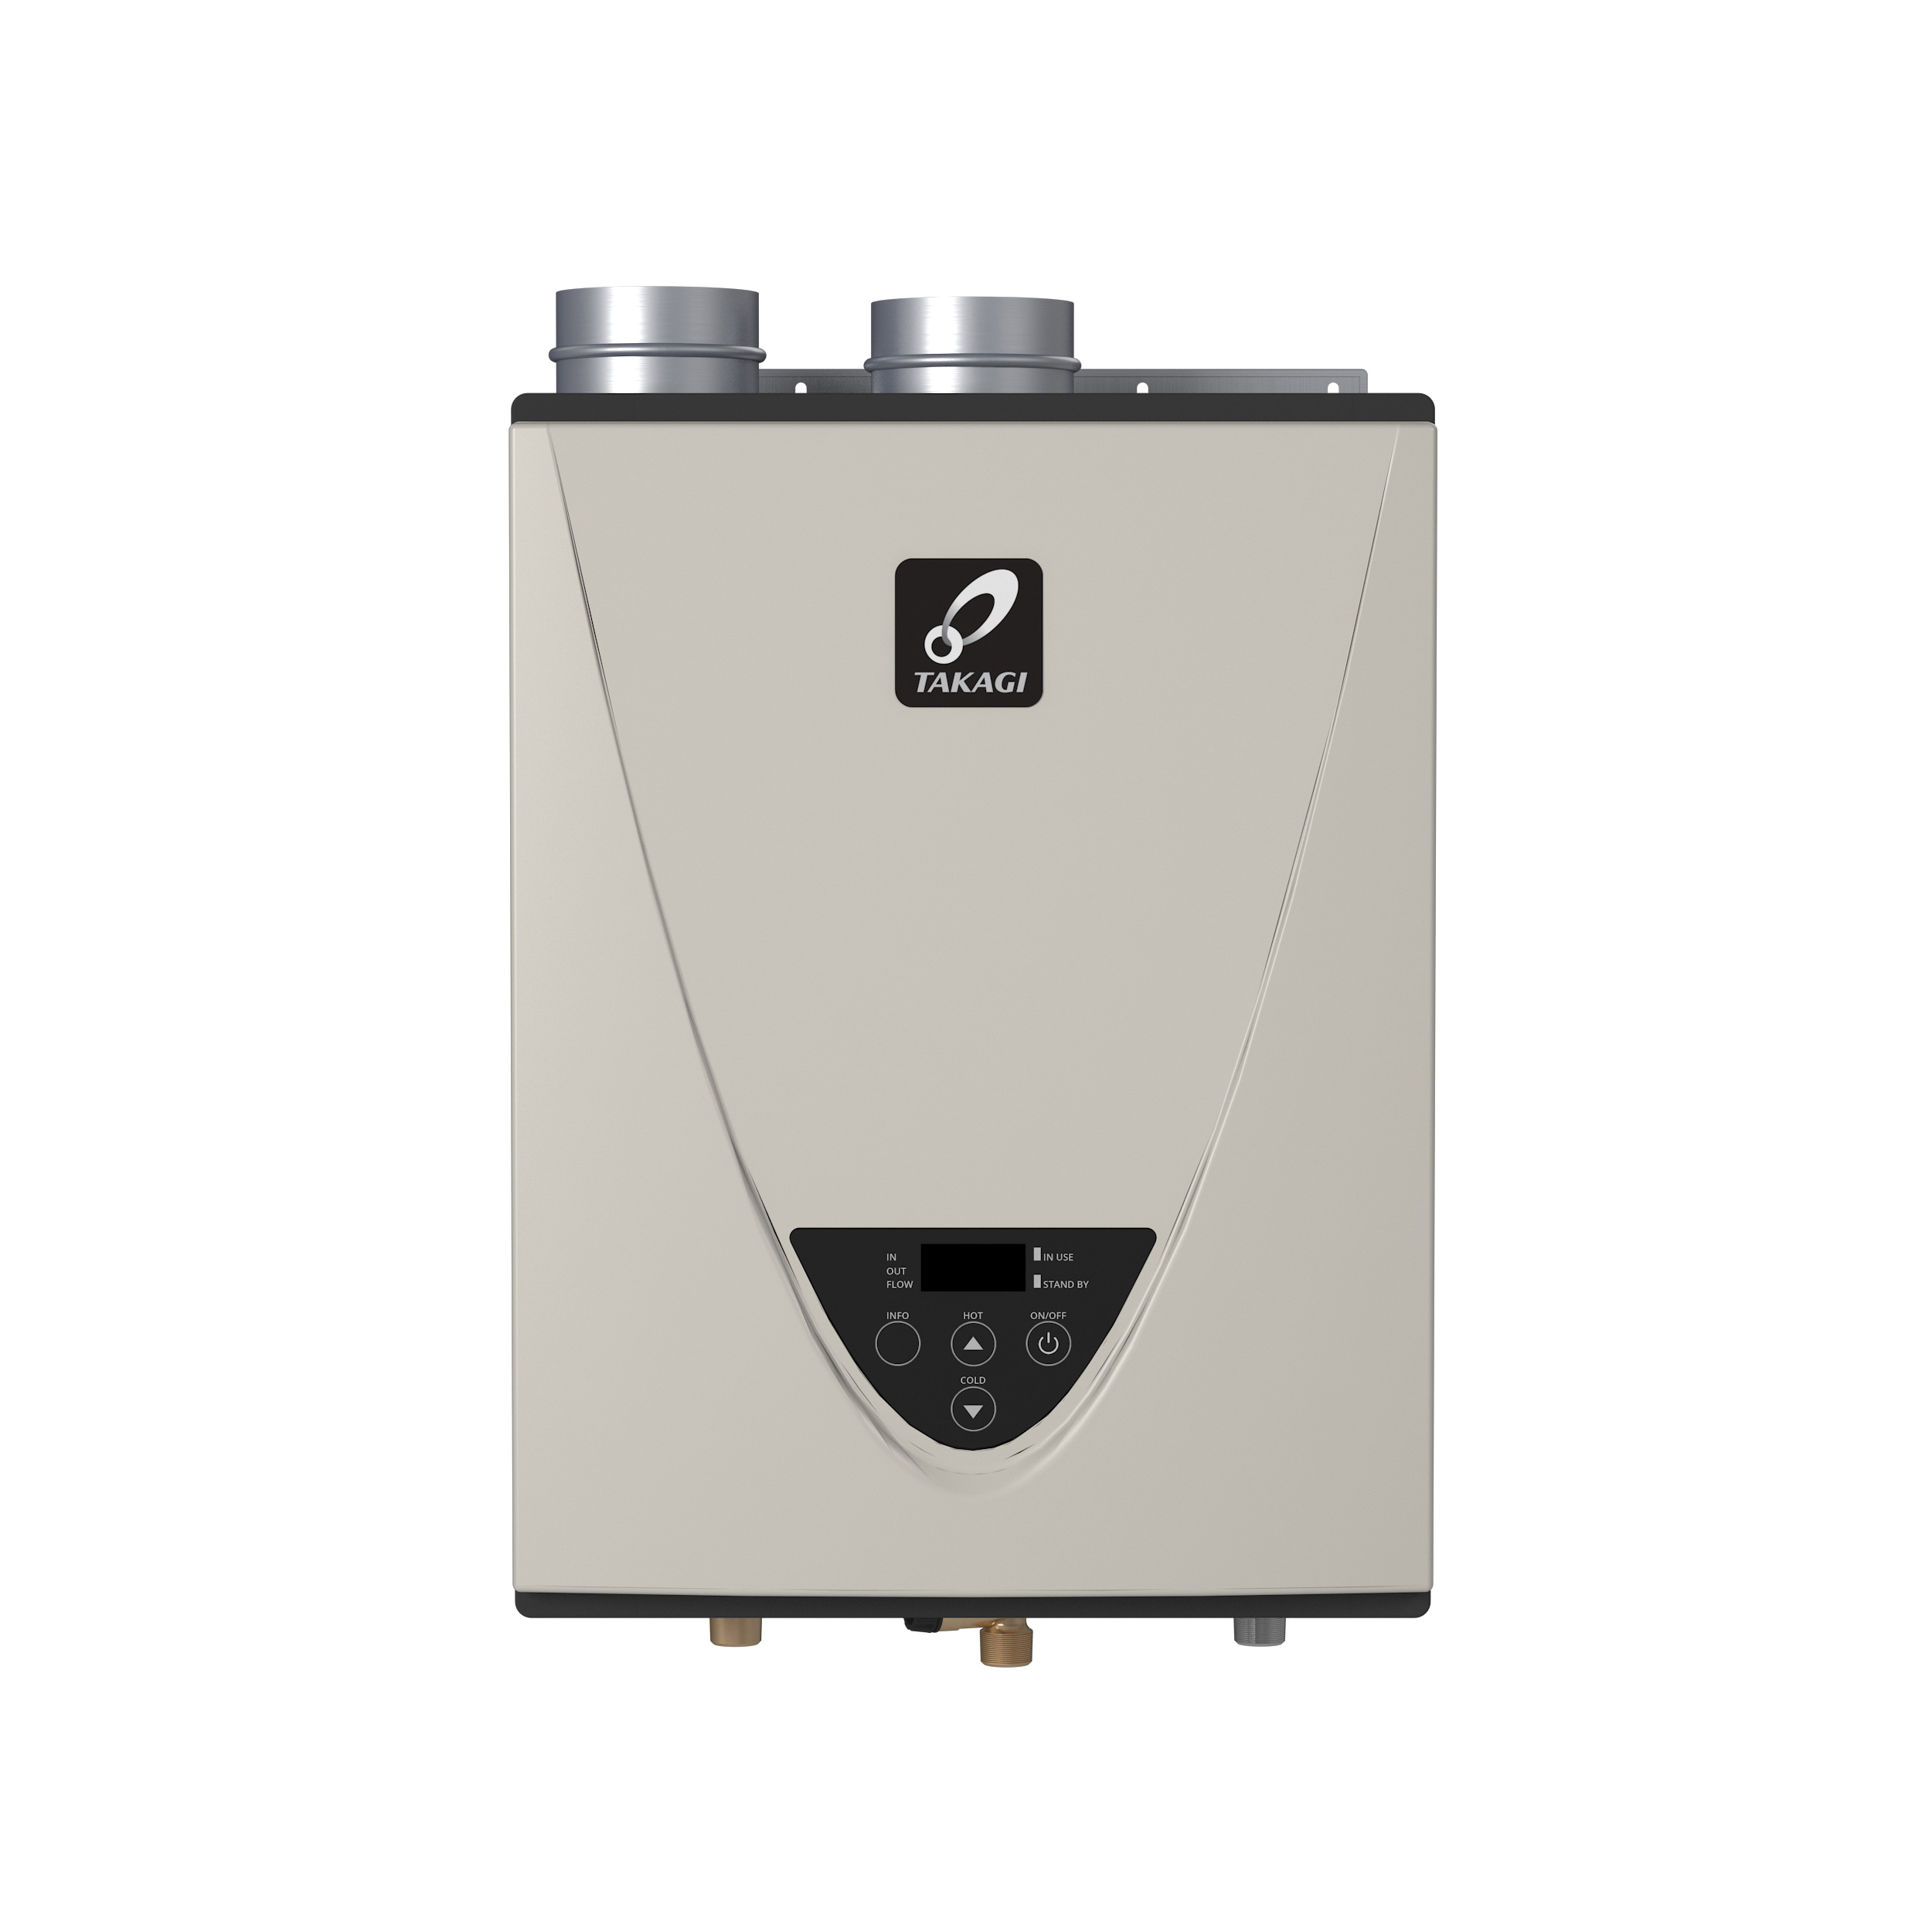 Takagi TH3JDVNG H3J Tankless Water Heater, Natural Gas Fuel, 160000 Btu/hr Heating, Indoor/Outdoor: Indoor, Condensing/Non Condensing: Condensing, 6.6 gpm, 4 in Direct Vent, 0.94, Commercial/Residential/Dual: Dual, Ultra Low NOx: Yes